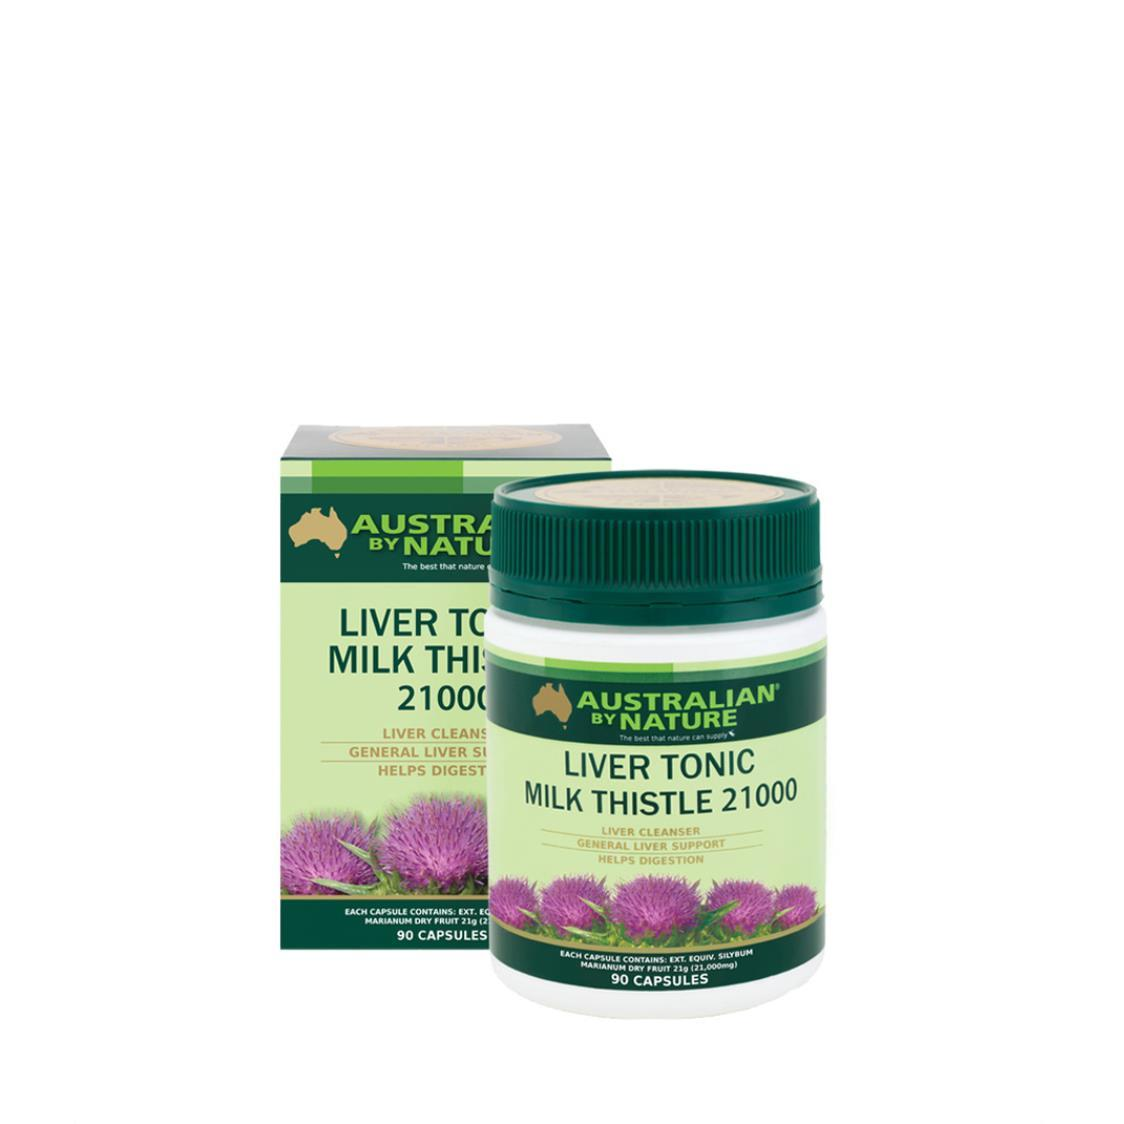 Liver Tonic Milk Thistle 21000mg 90 Capsules